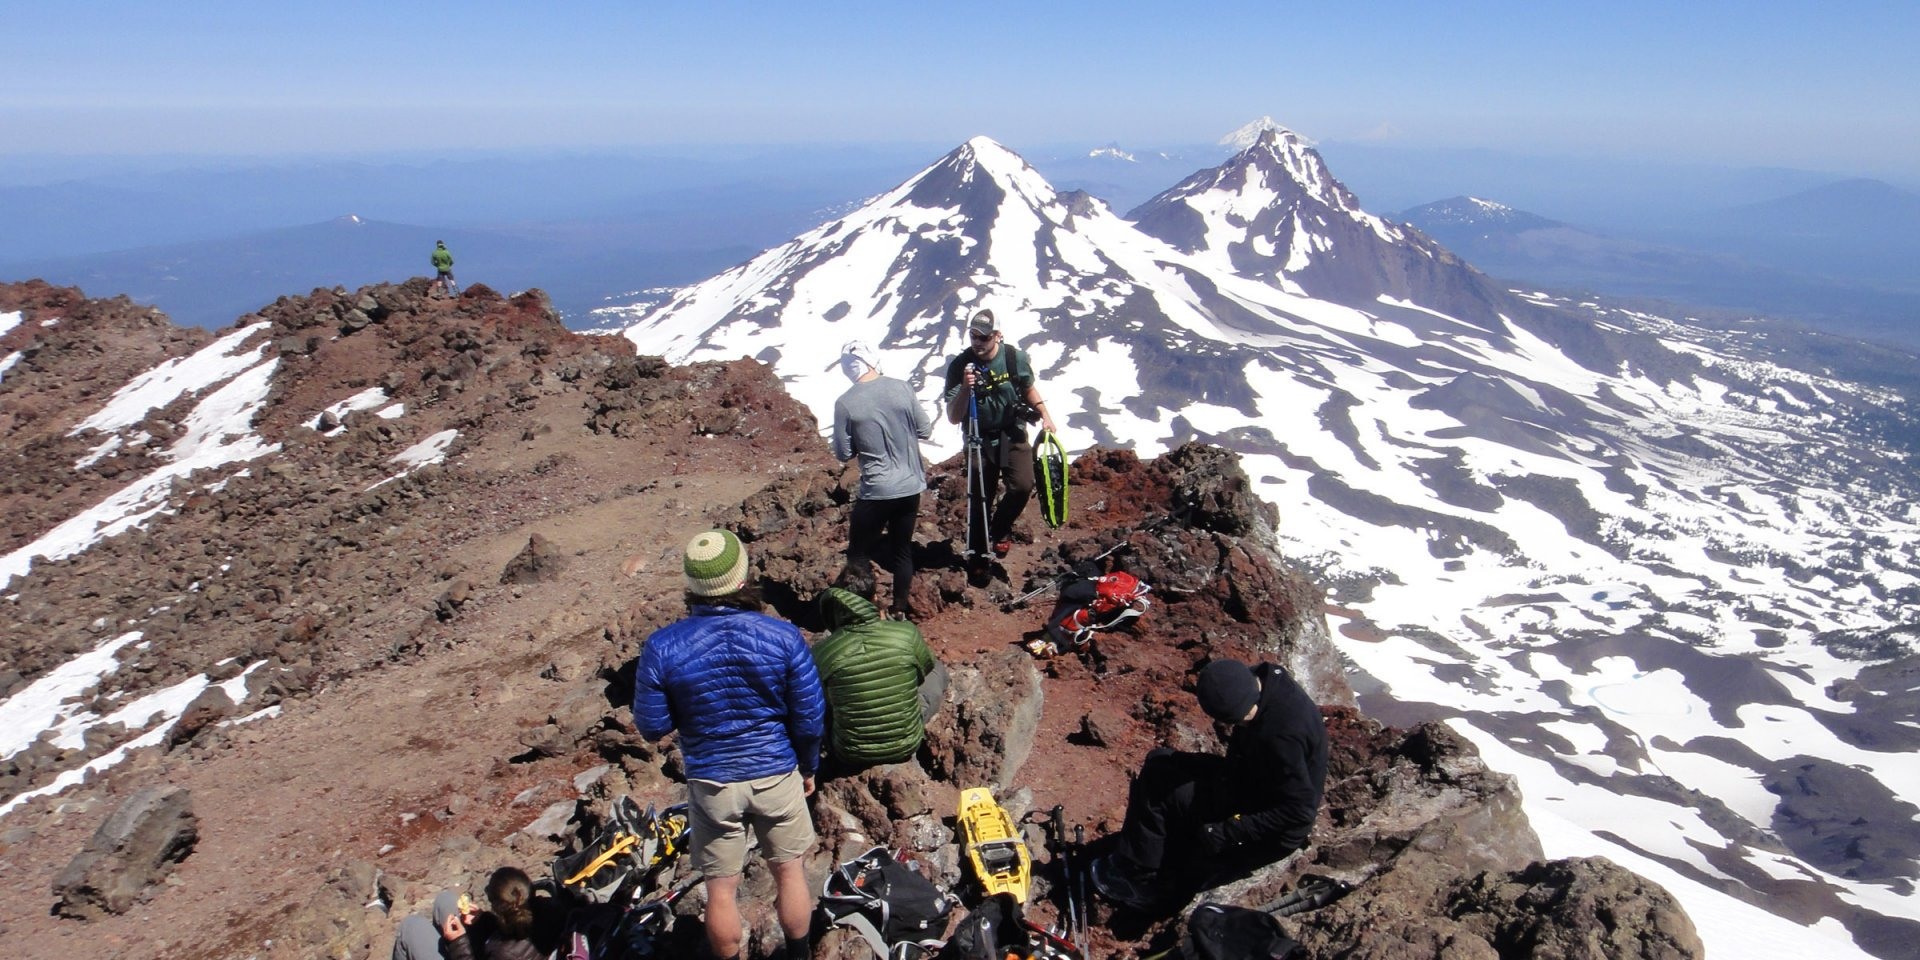 Hikers on the Summit of South Sister